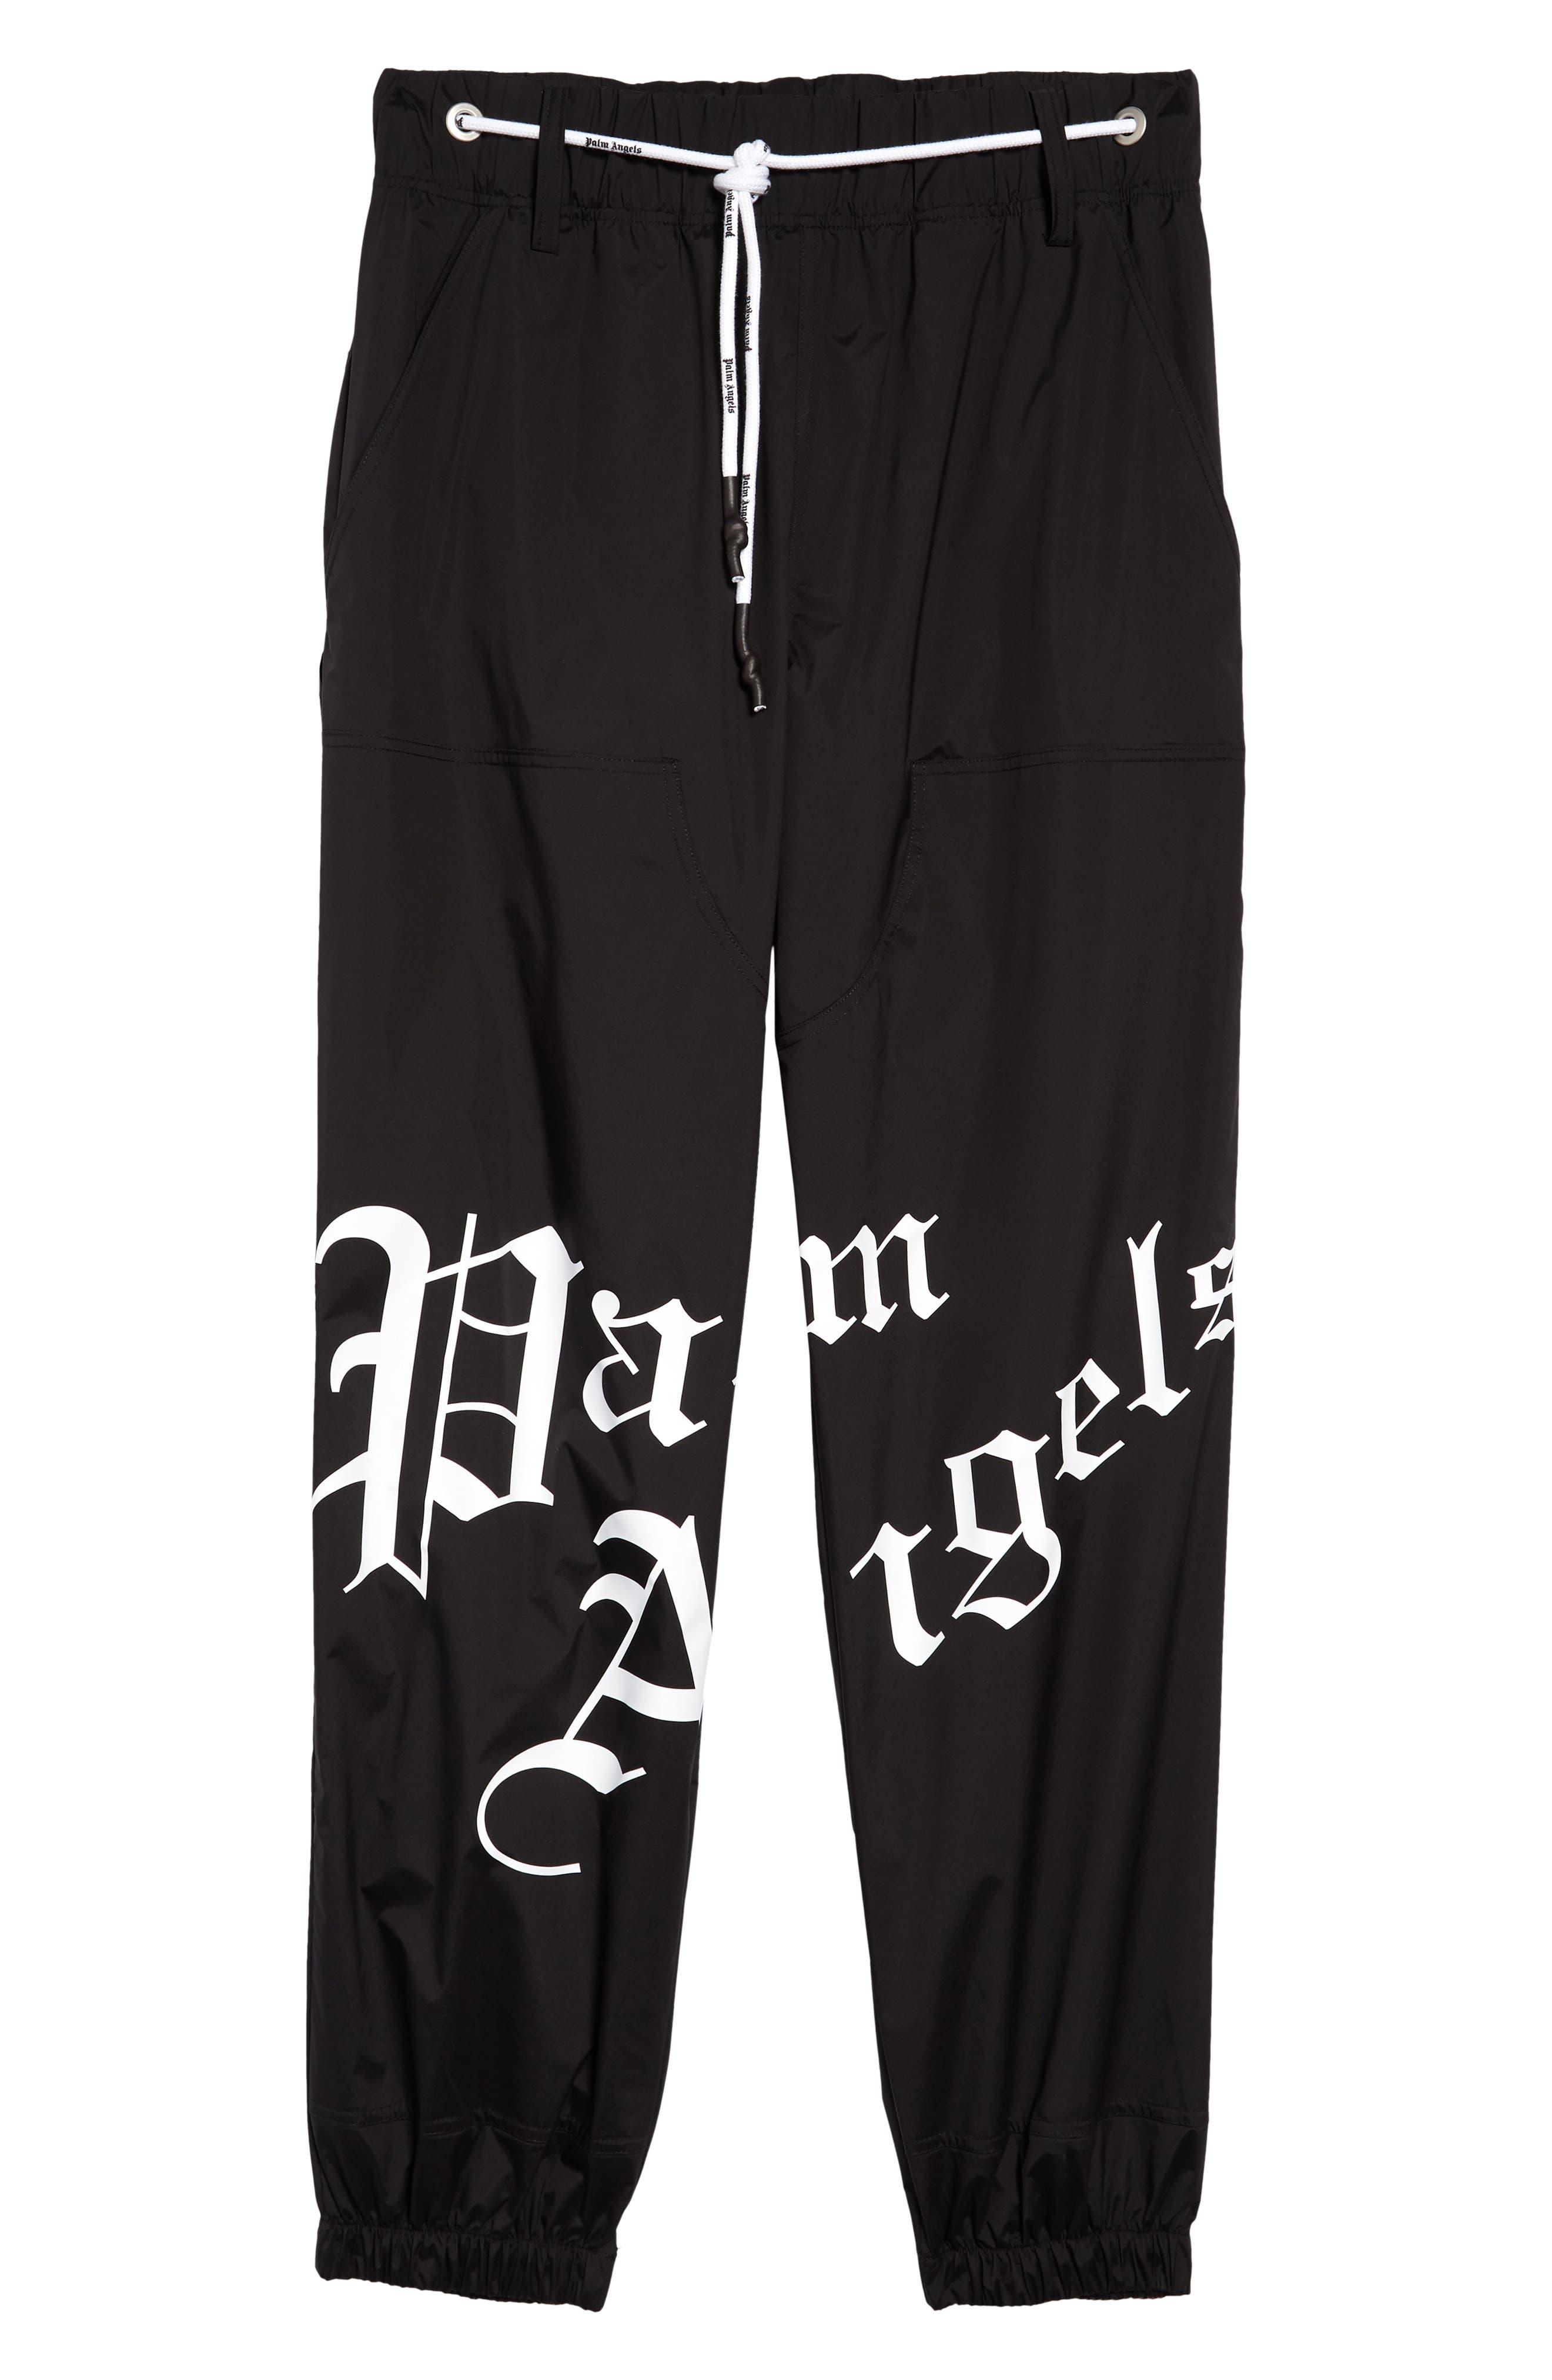 Boys Sweatpants Variety of Martial Arts Action Silhouette Jogger Pants